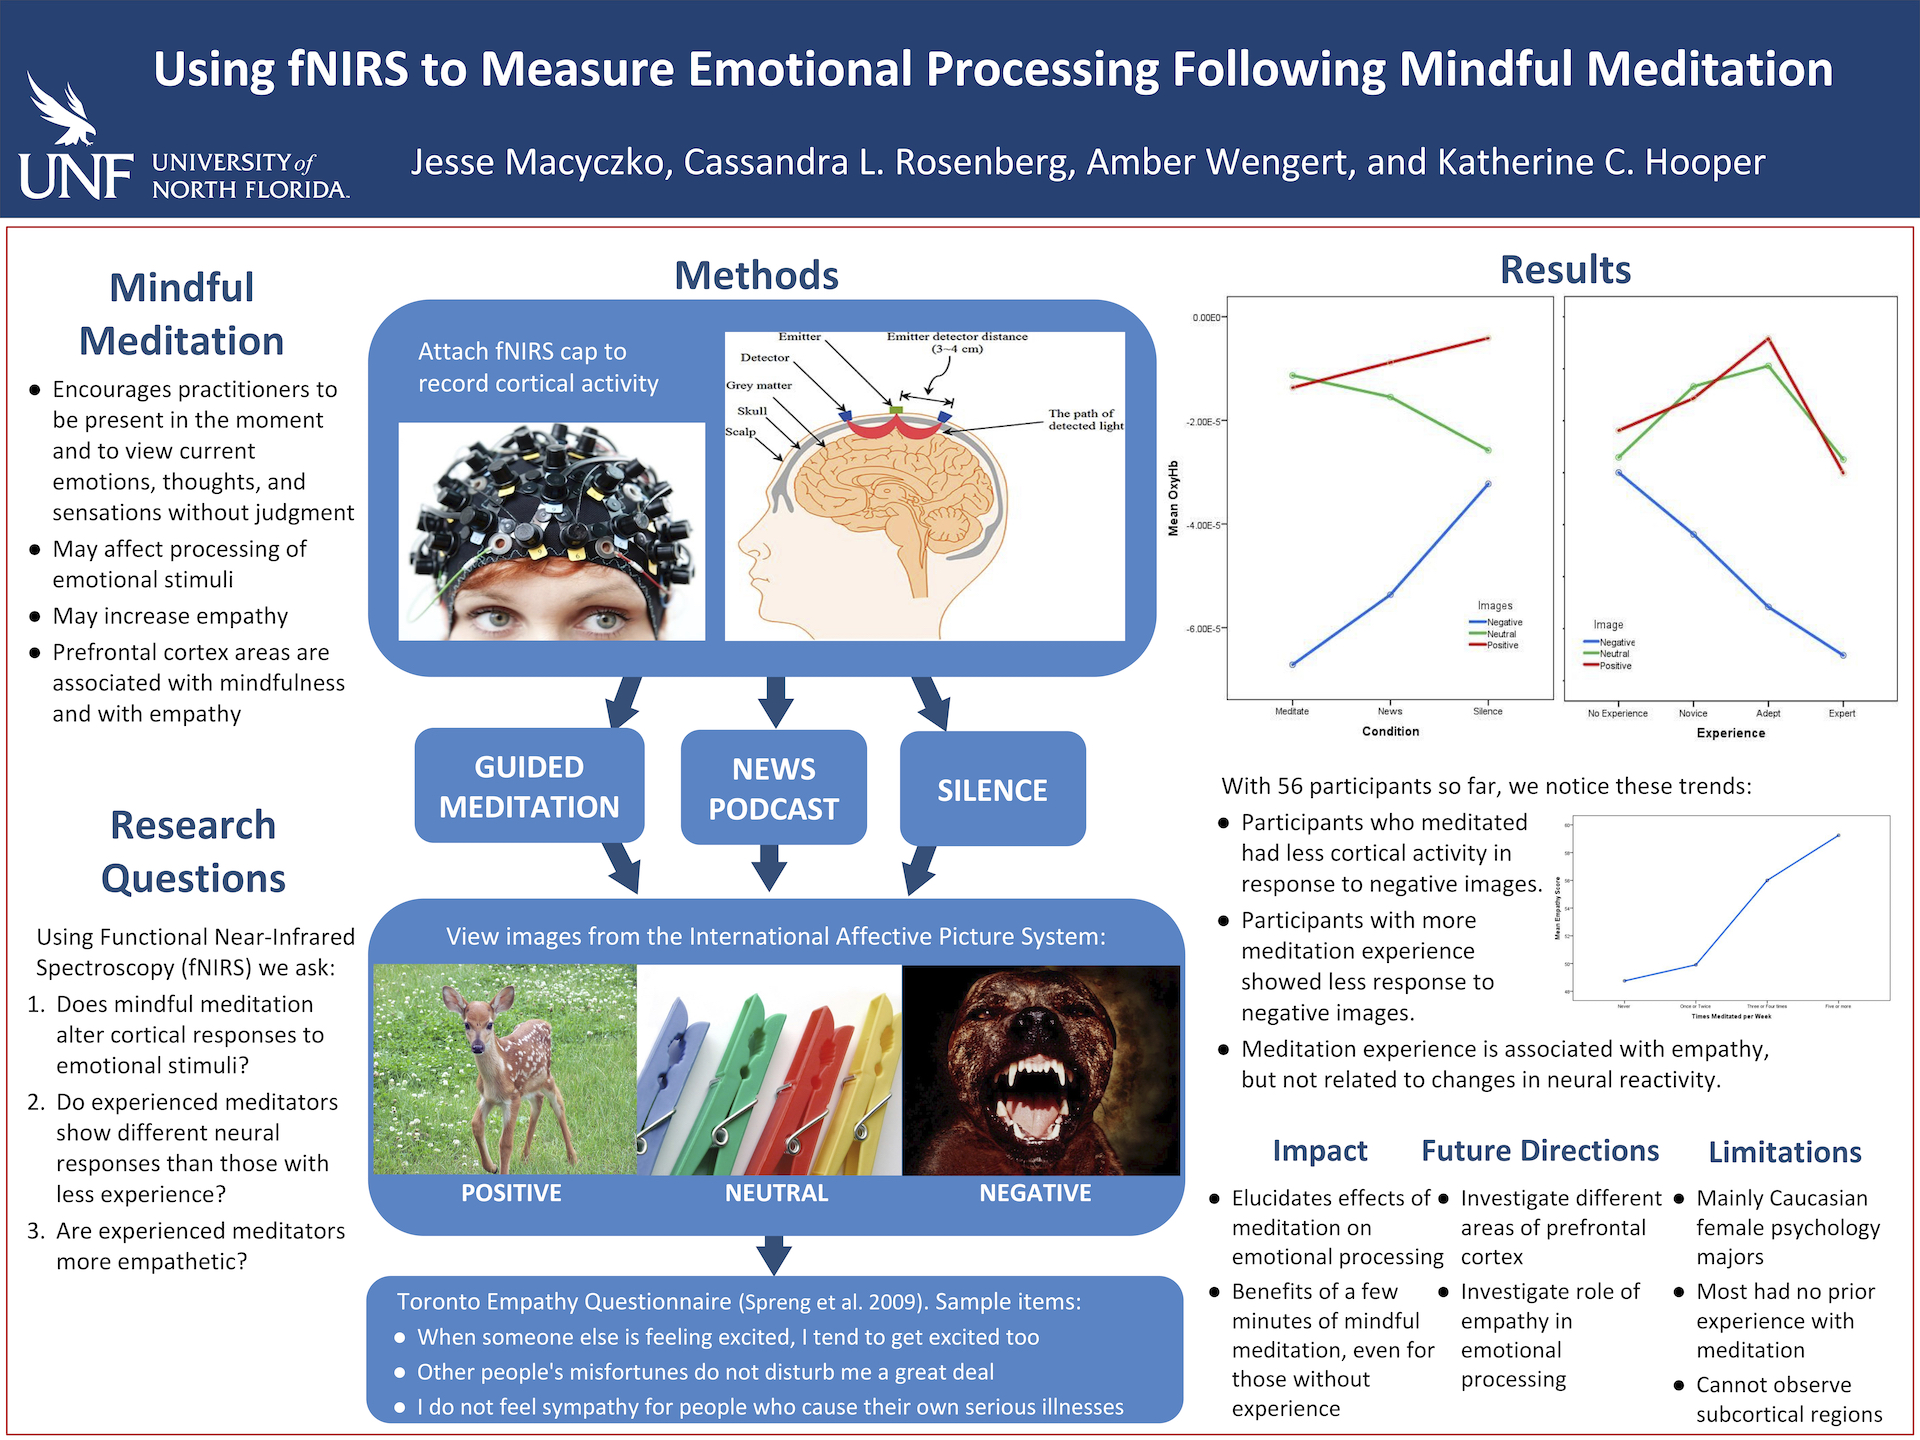 Using fNIRS to Measure Emotional Processing Following Mindful Meditation poster